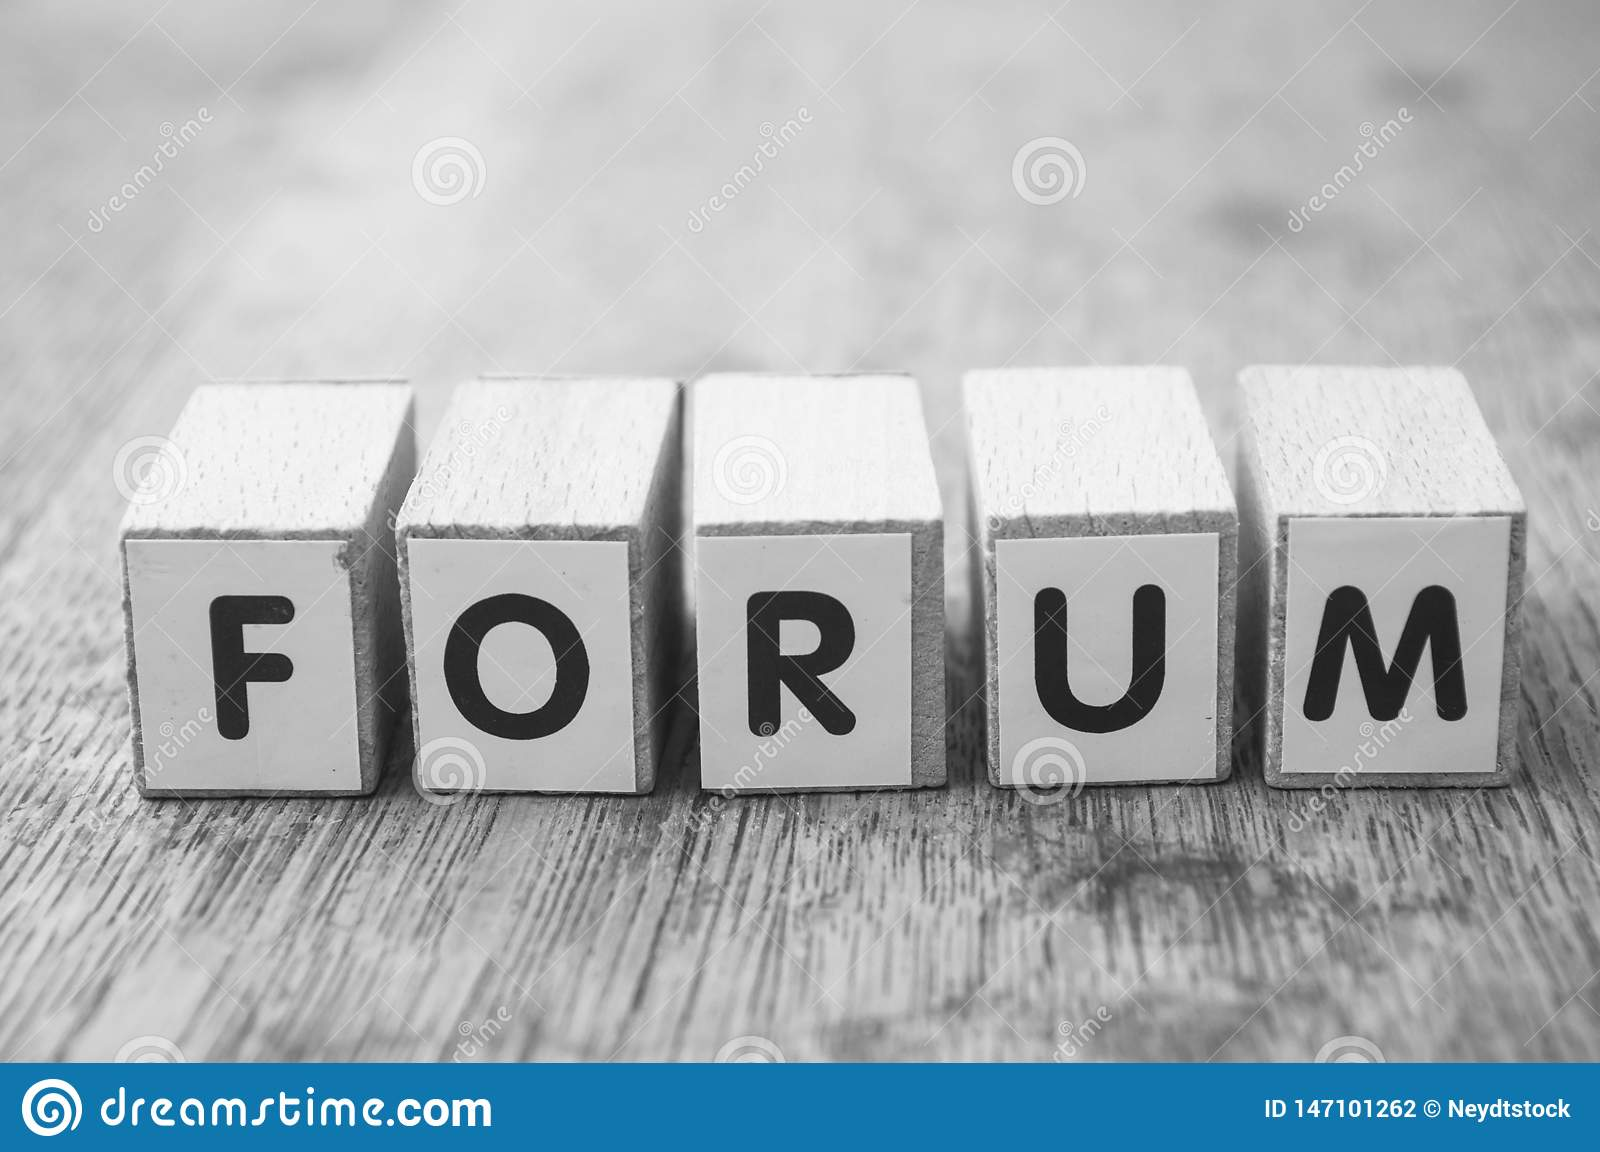 word on wooden cube on wooden desk background concept - Forum